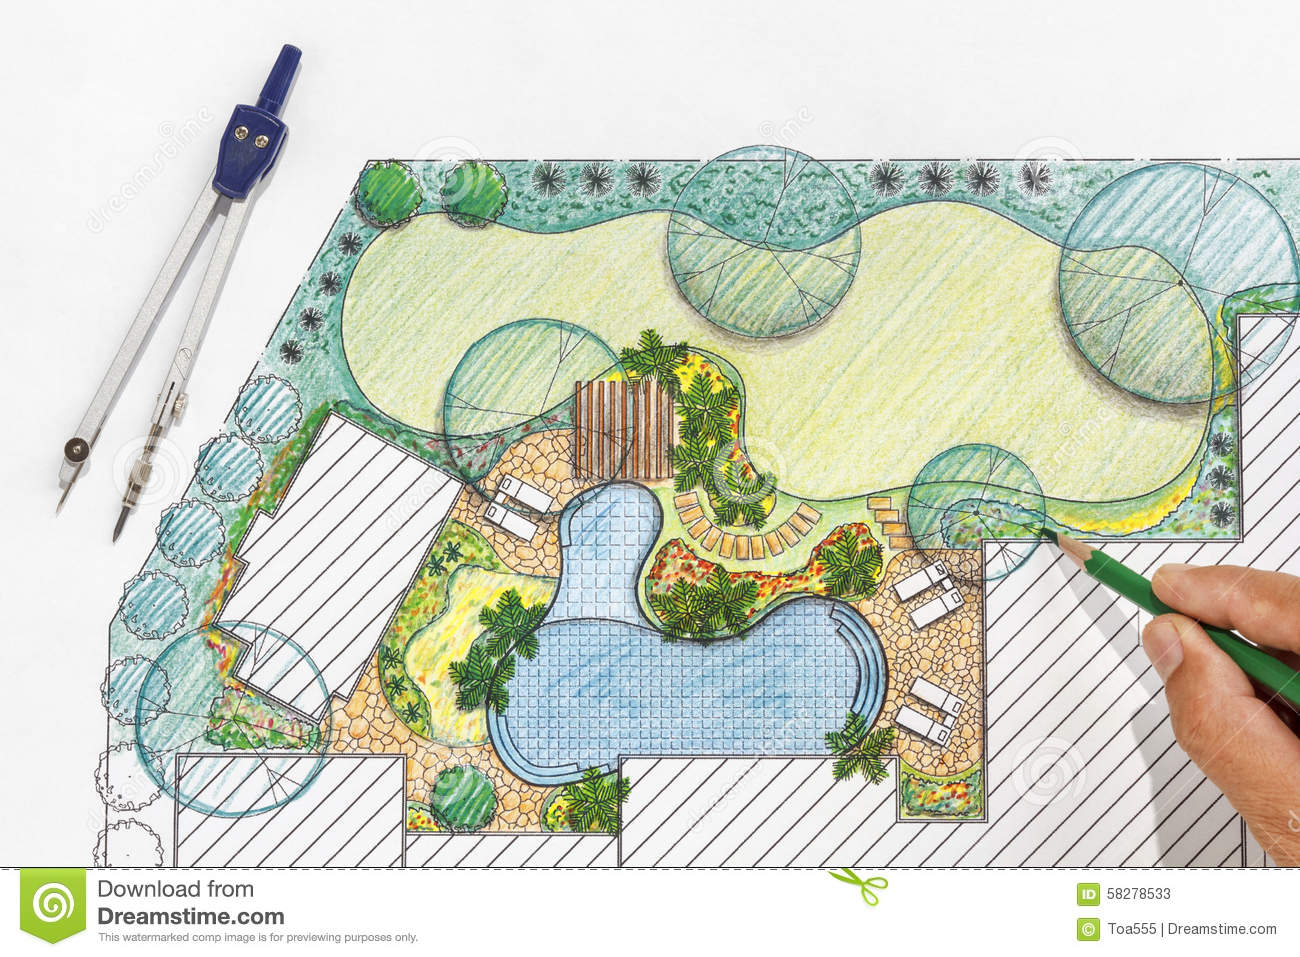 Landscape architect design backyard plan for villa stock for Homegardendesignplan